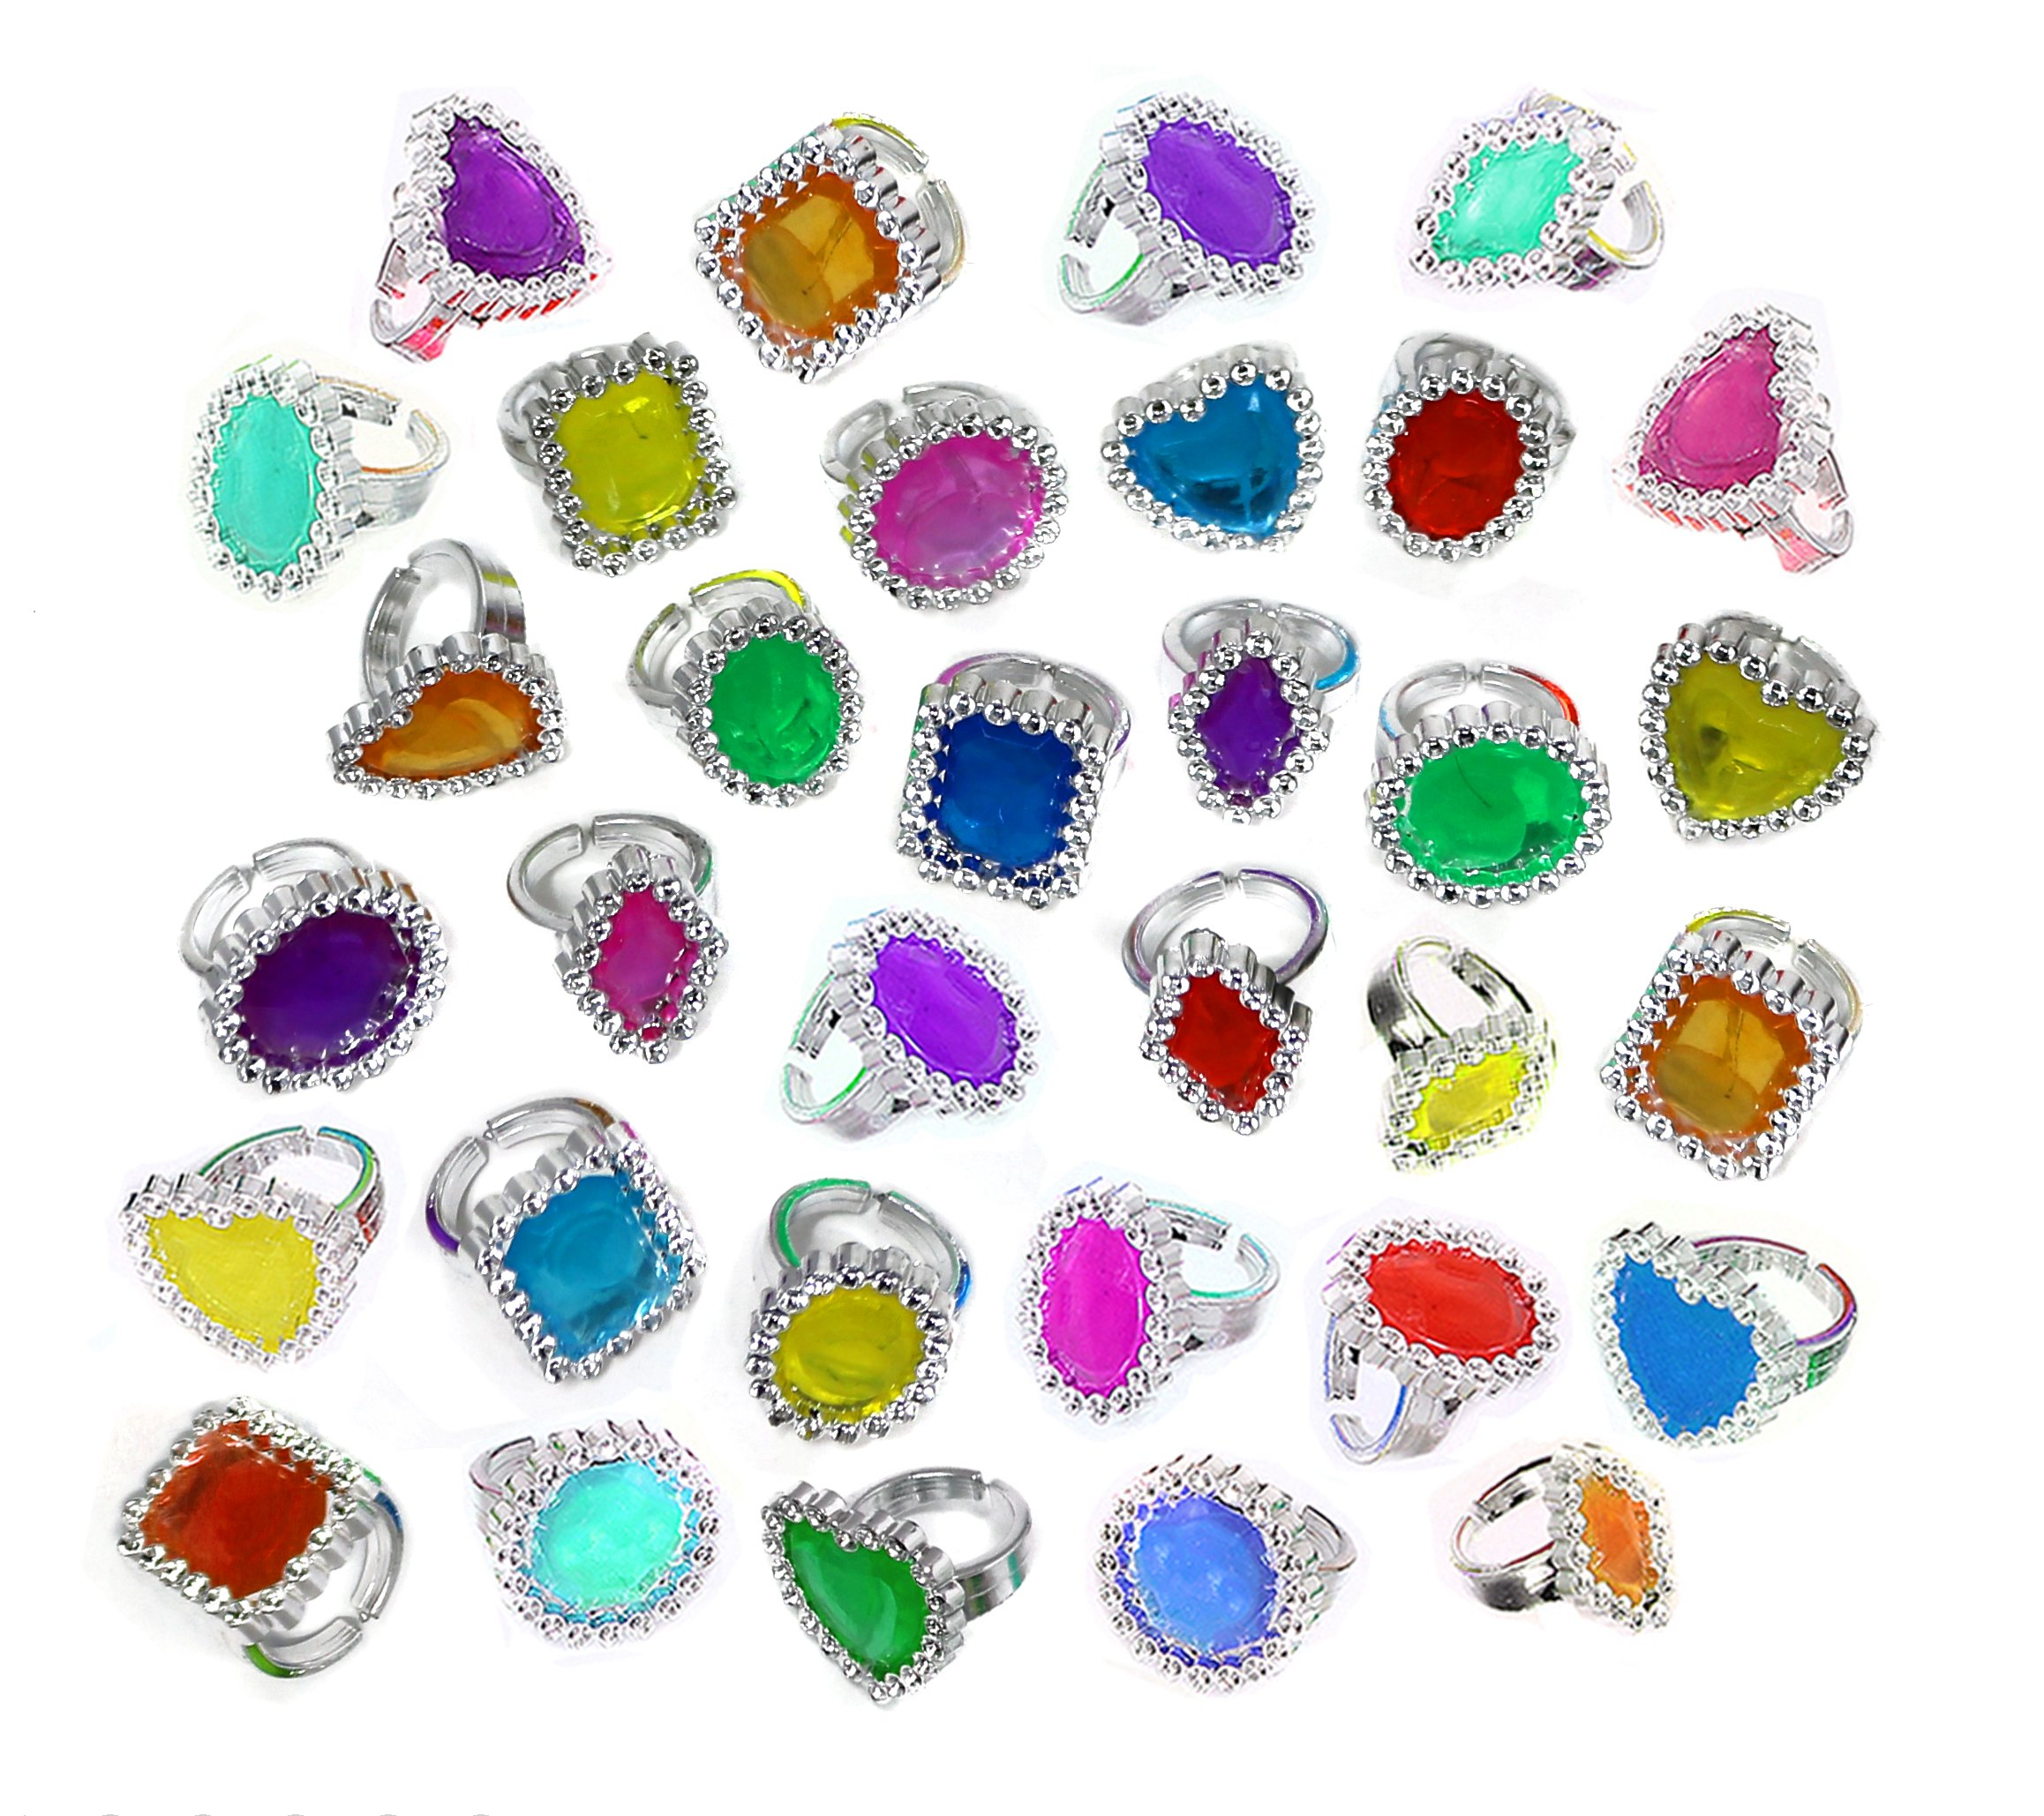 Colorful Rhinestone Rings Bulk Party Pack of 144 Plastic Jewel Rings by SN